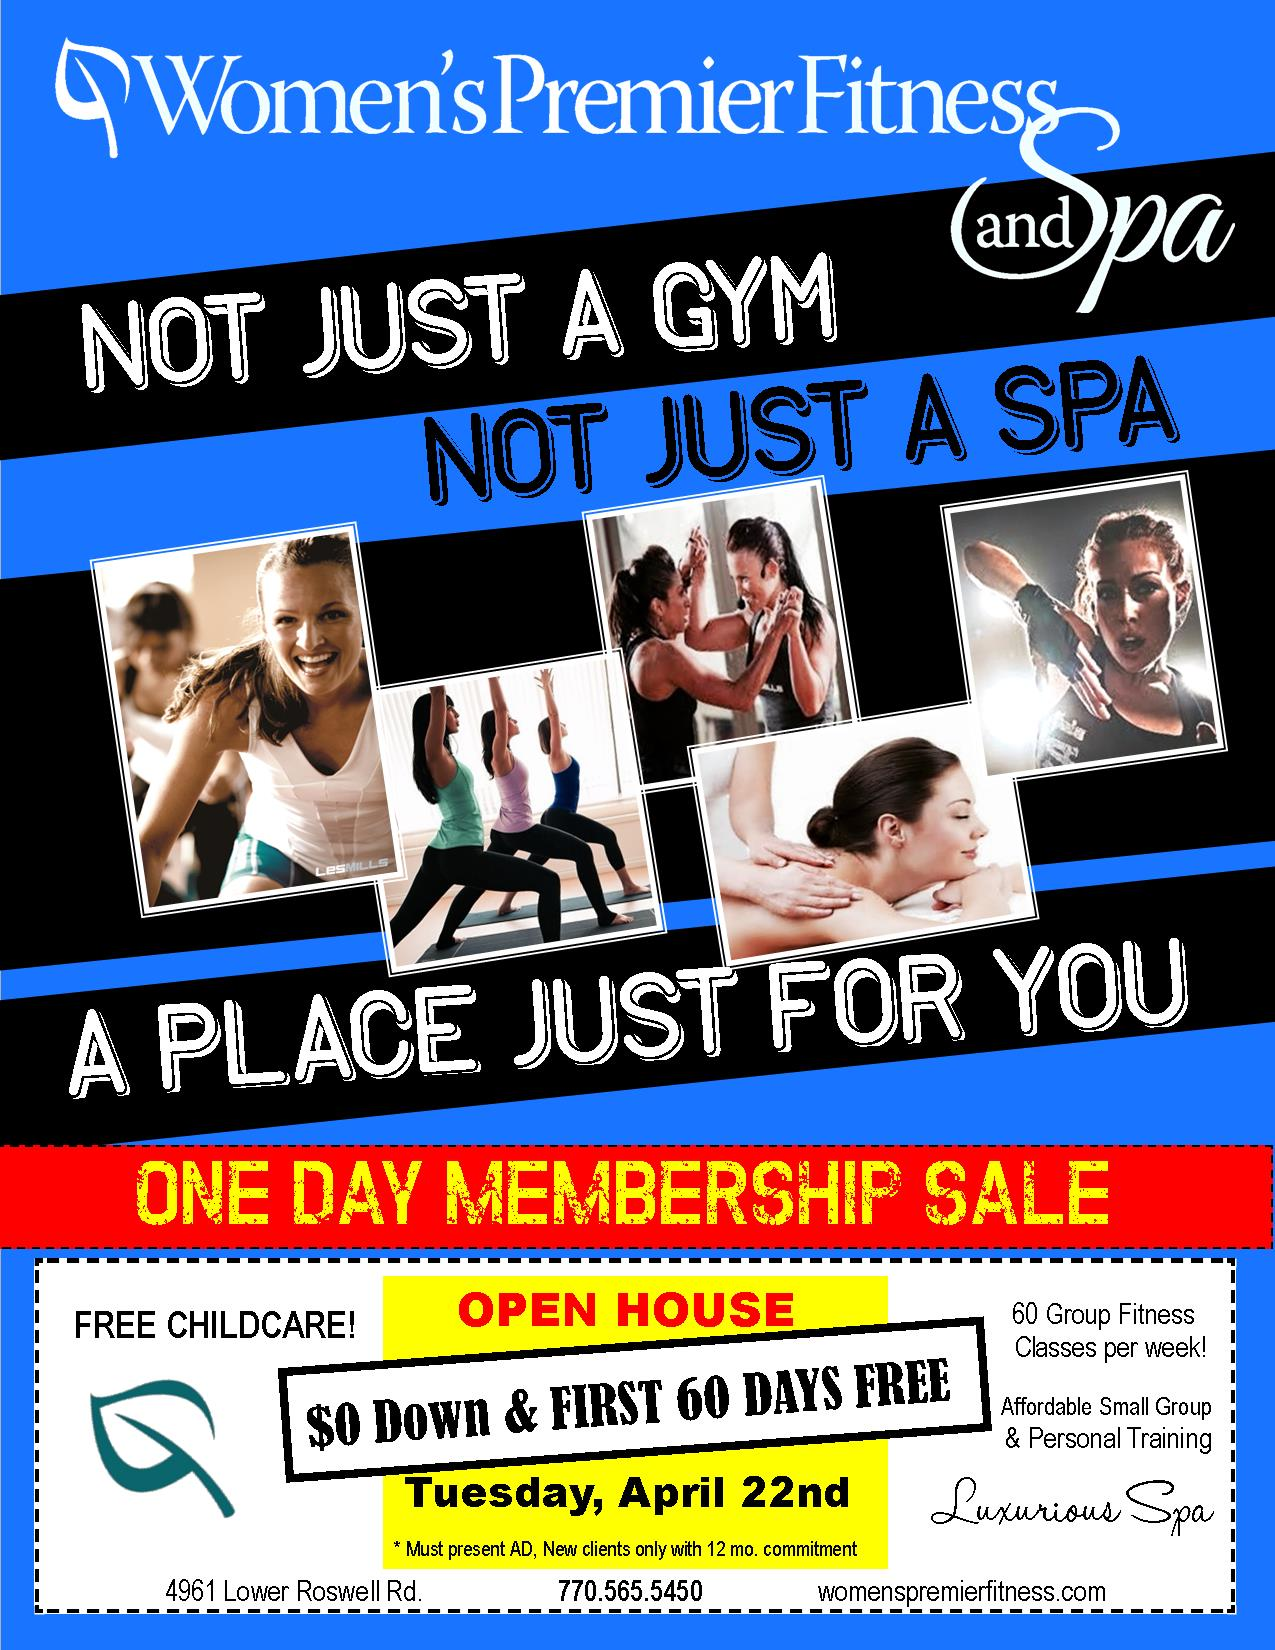 FREE 60 Day Membership Sale